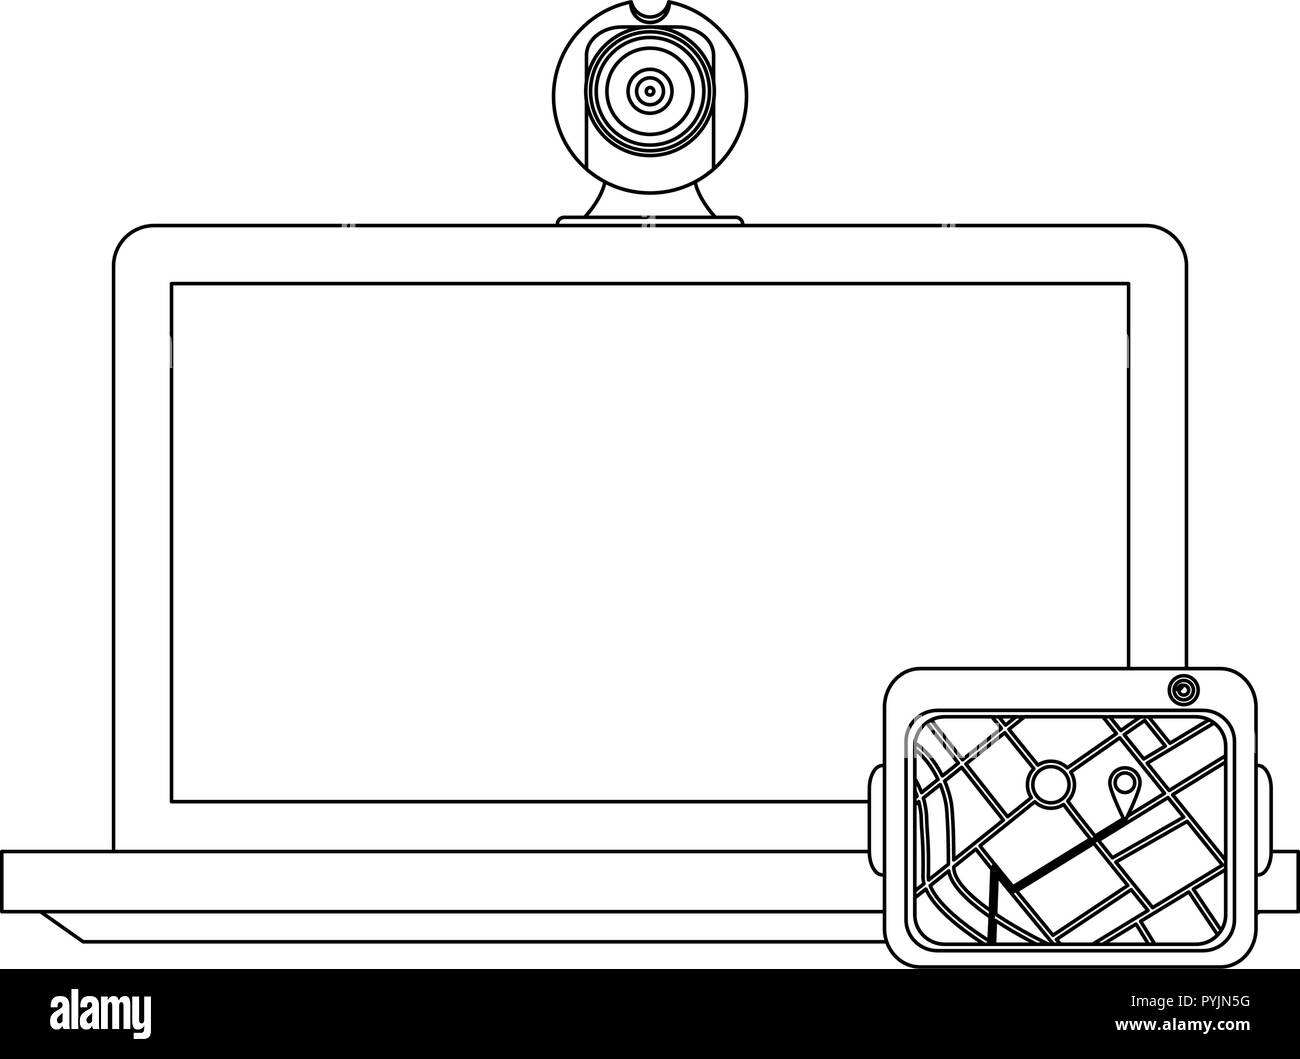 hight resolution of laptop with webcam and gps vector illustration graphic design